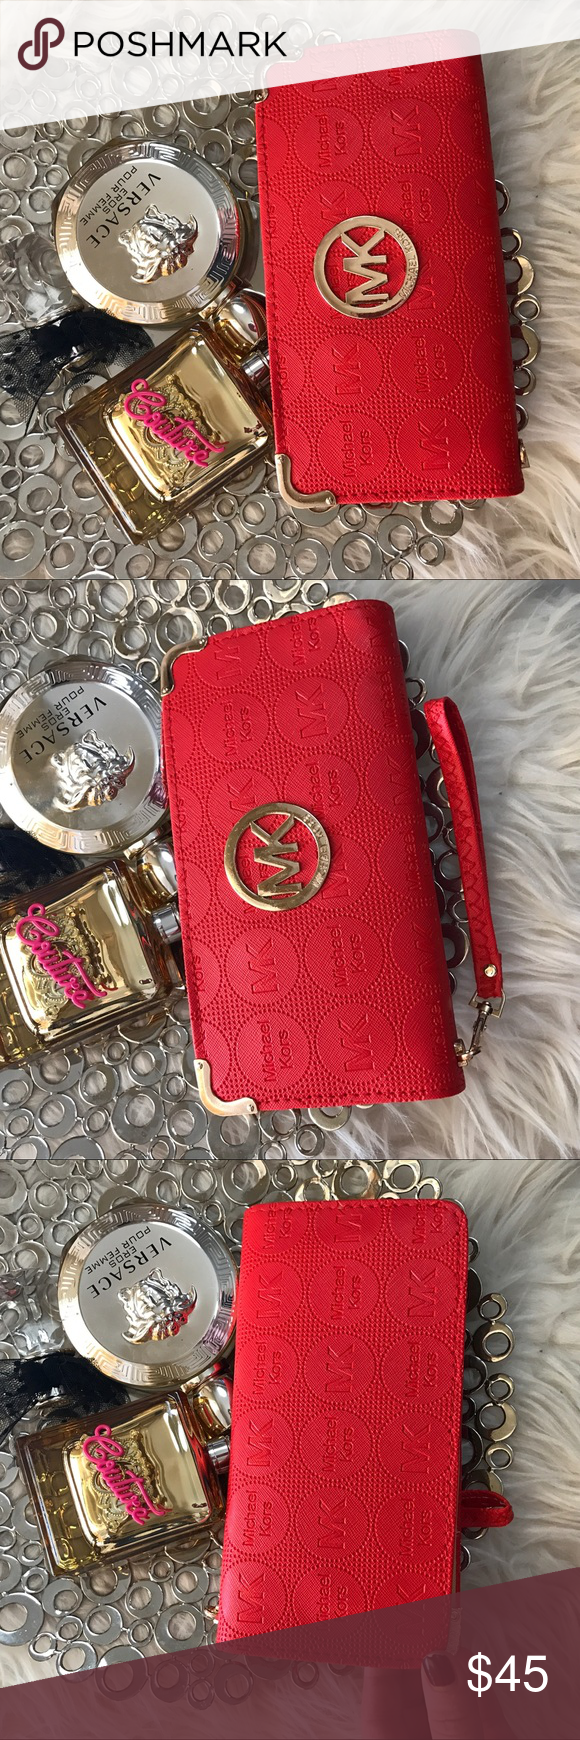 Michael Kors Scarlet red monogram leather wallet Very cute, a lot of space to hold all that you need. Michael Kors Bags Wallets